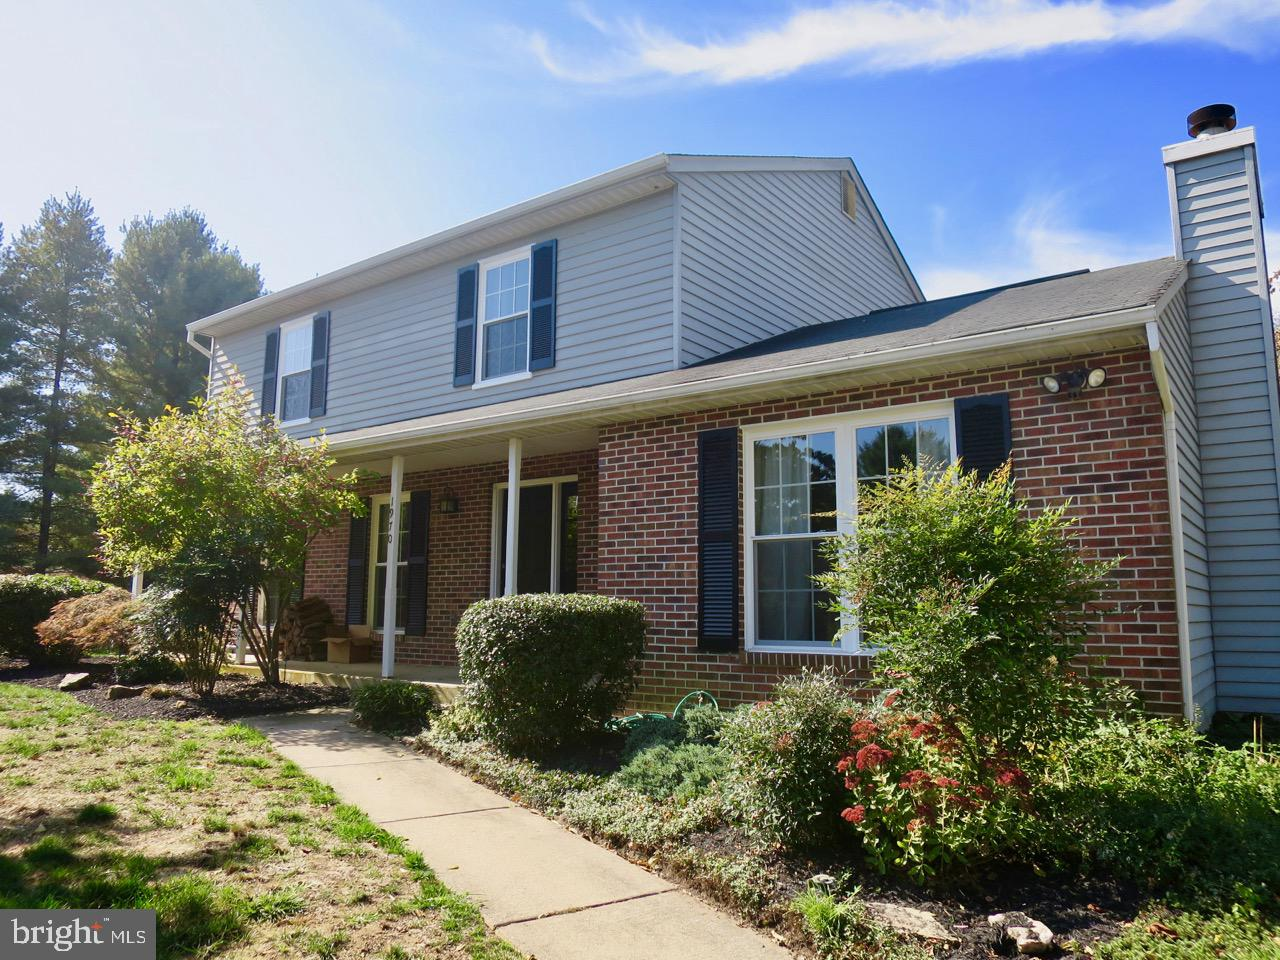 **SELLER IS MOTIVATE.  **Let's talk about what we can do to get in this house. It's Move in Ready! Financing as little as 3/5% Down  ***Sits on a little over a 1/2  Acre ..Tree lined for Privacy.   ..Beautiful Colonial on a Corner Lot at the end of a No Thru Street. Great for kids to ride their bikes, electrics/battery cars or scooters & skate boards.   Features Include: Main Level --Living room, separate dining room, Eat in Kitchen, family room w/ An-trim door to rear patio plus a 1/2 bath. Upper level -- 3 bedrooms 2 full baths. Large Master Bedroom with A Brand New remodeled full Bath.  Large basement with Game room &office that can be used as a bedroom, Rec room,  Exercise room/storage room/Utility room. This home has a nice front porch and rear patio.,Sump pump.** New Items:  Windows tilt in double pane- July 2019, Paint 2019, Hot Wtr heater- 80 gal. -2018.  Updated  Items over time:    Hard wood floors Main level and hallway upper level - 2014, Family Rm Carpet ~ 2014, Frig. w/ Ice maker ~ 2014 dishwasher, Hall bath remodeled in 2014, HVAC/Heat Pump ~ 2013. City Municipal trash pickup, Public water.  Bring your offer*****